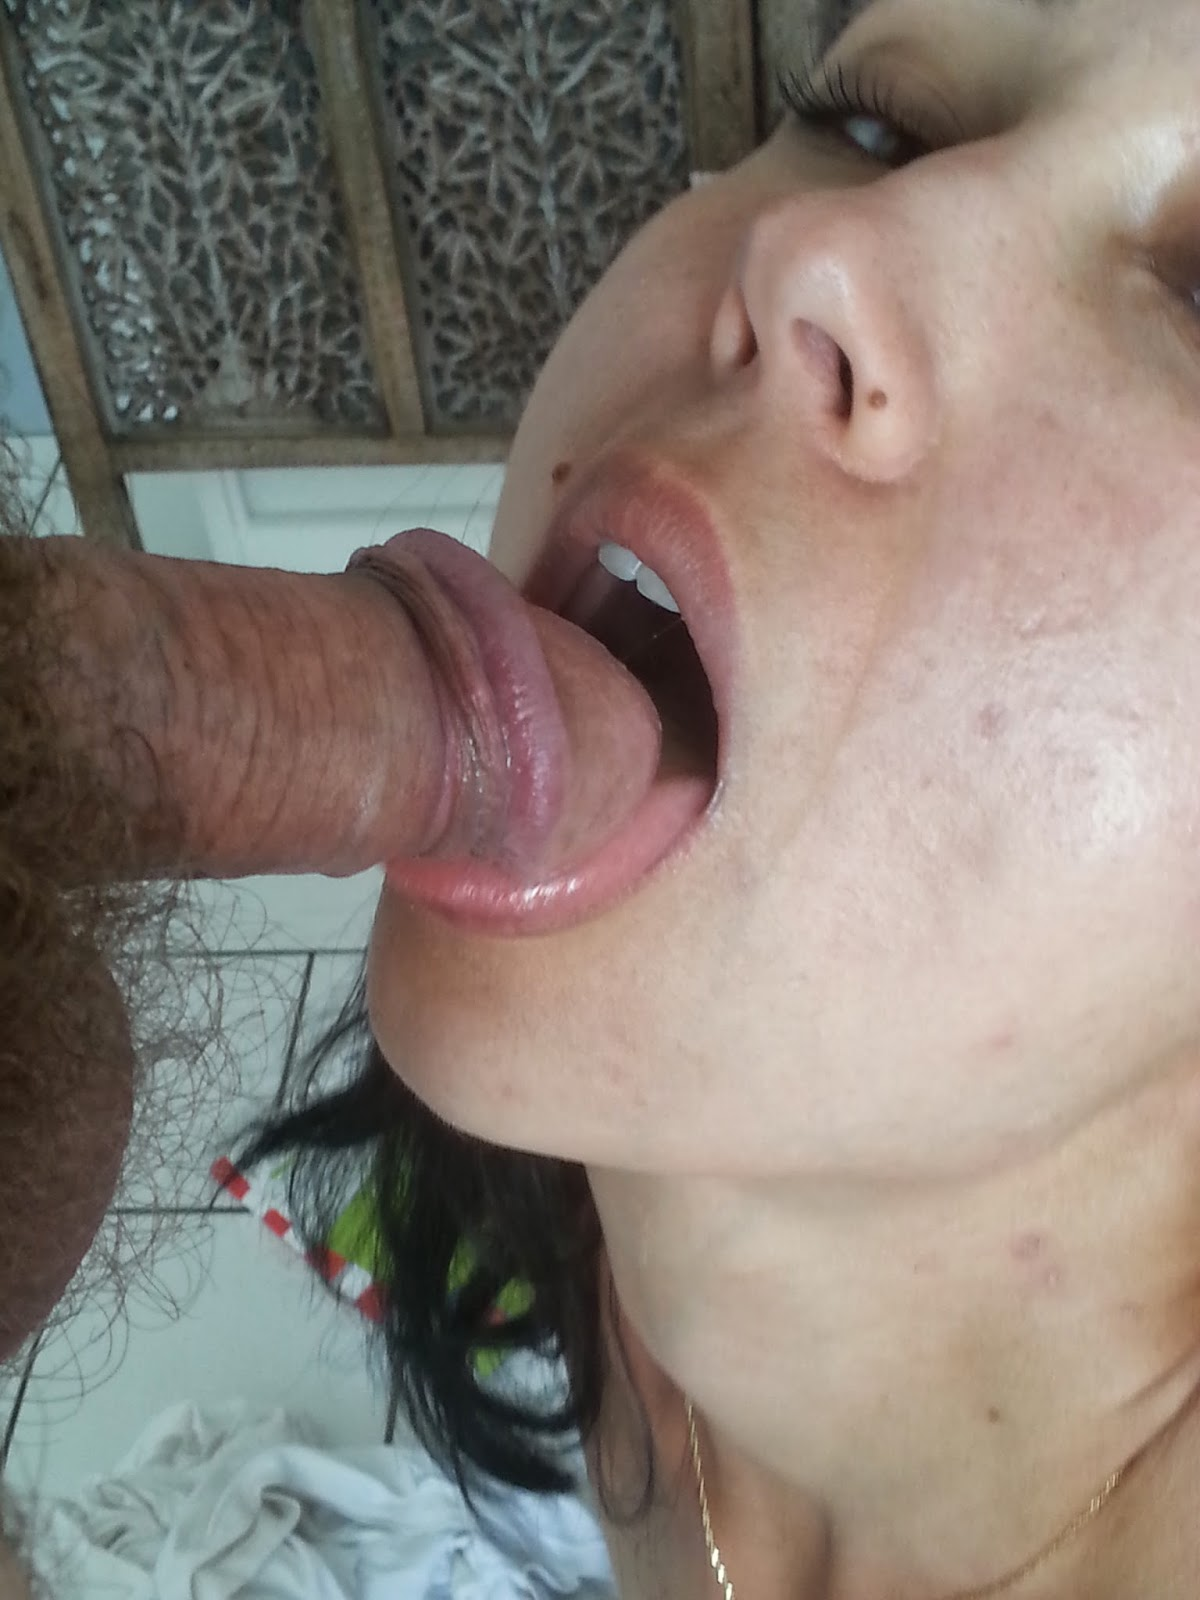 Slutwife eats cum and drinks piss from strangers 5